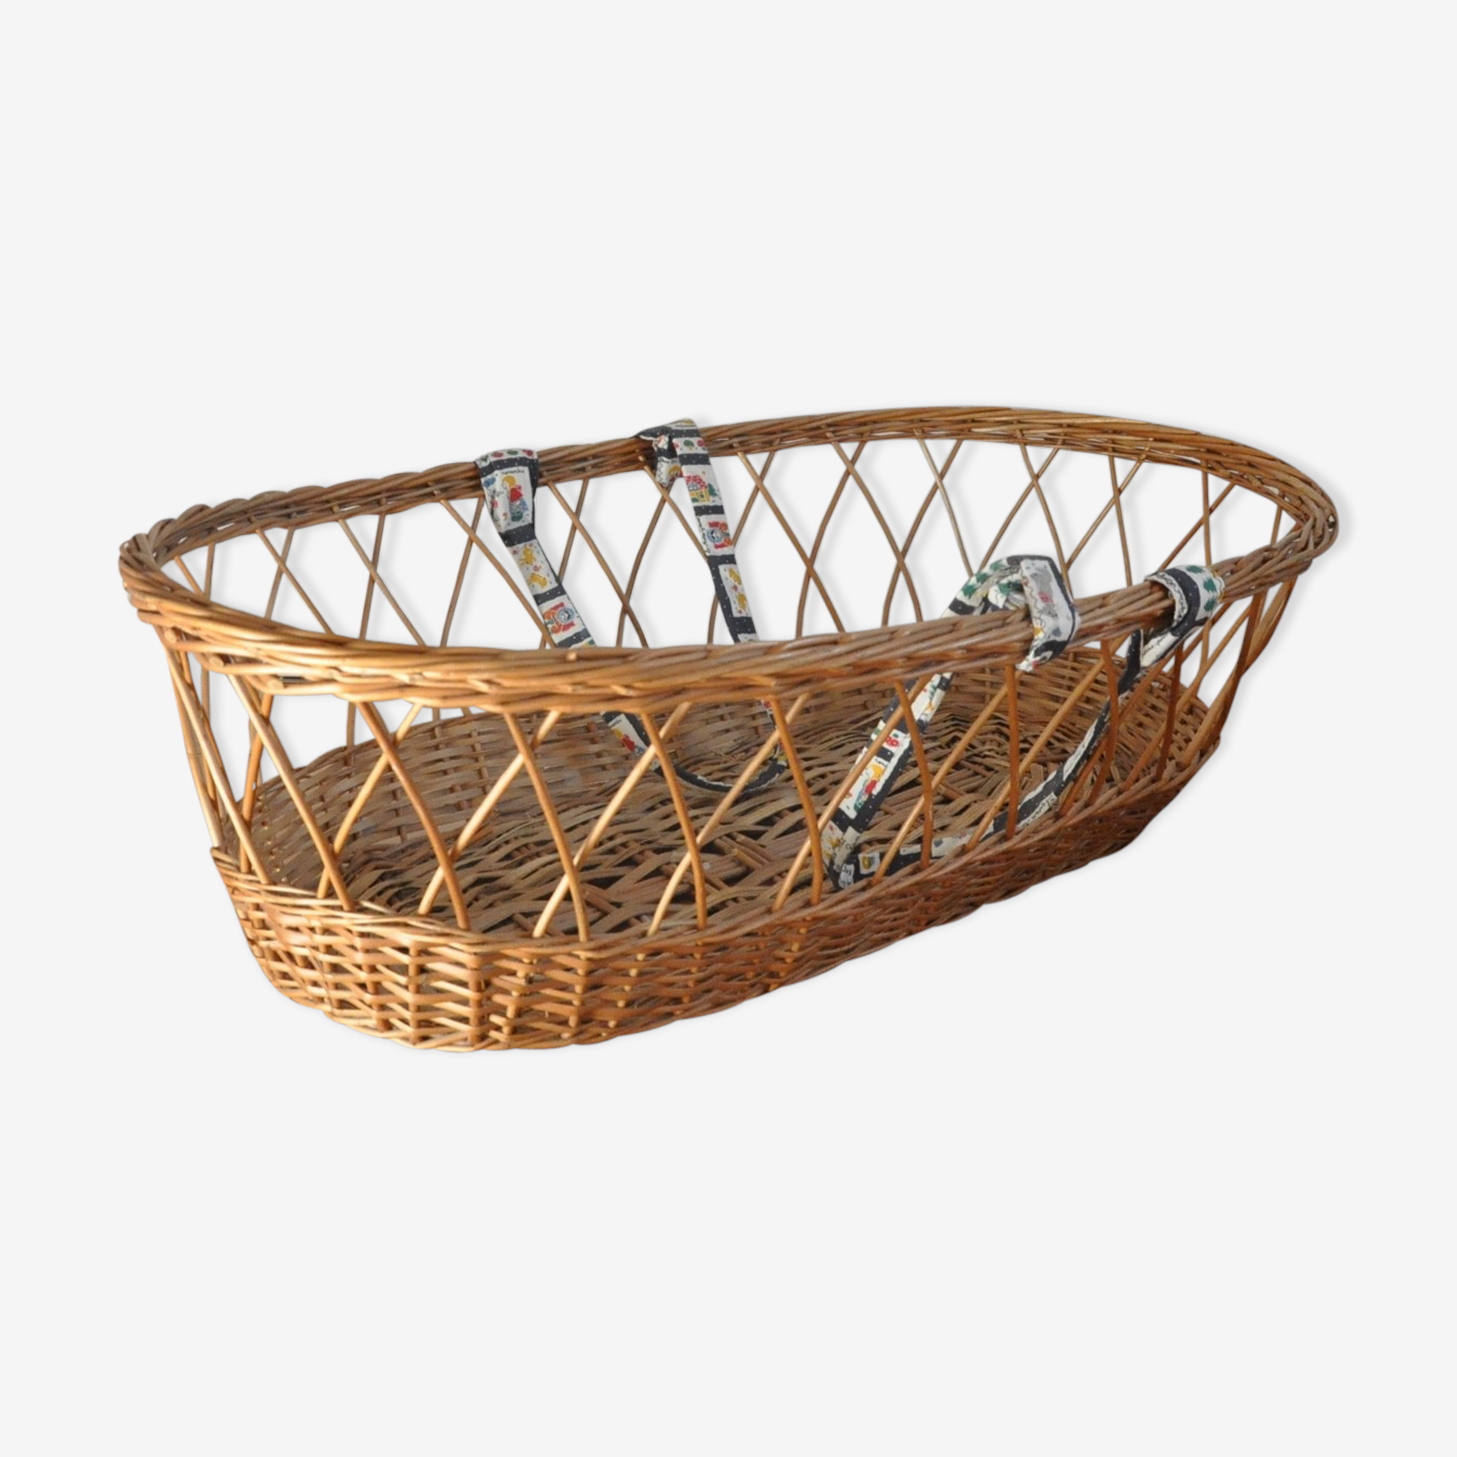 Rattan and wicker bassinet